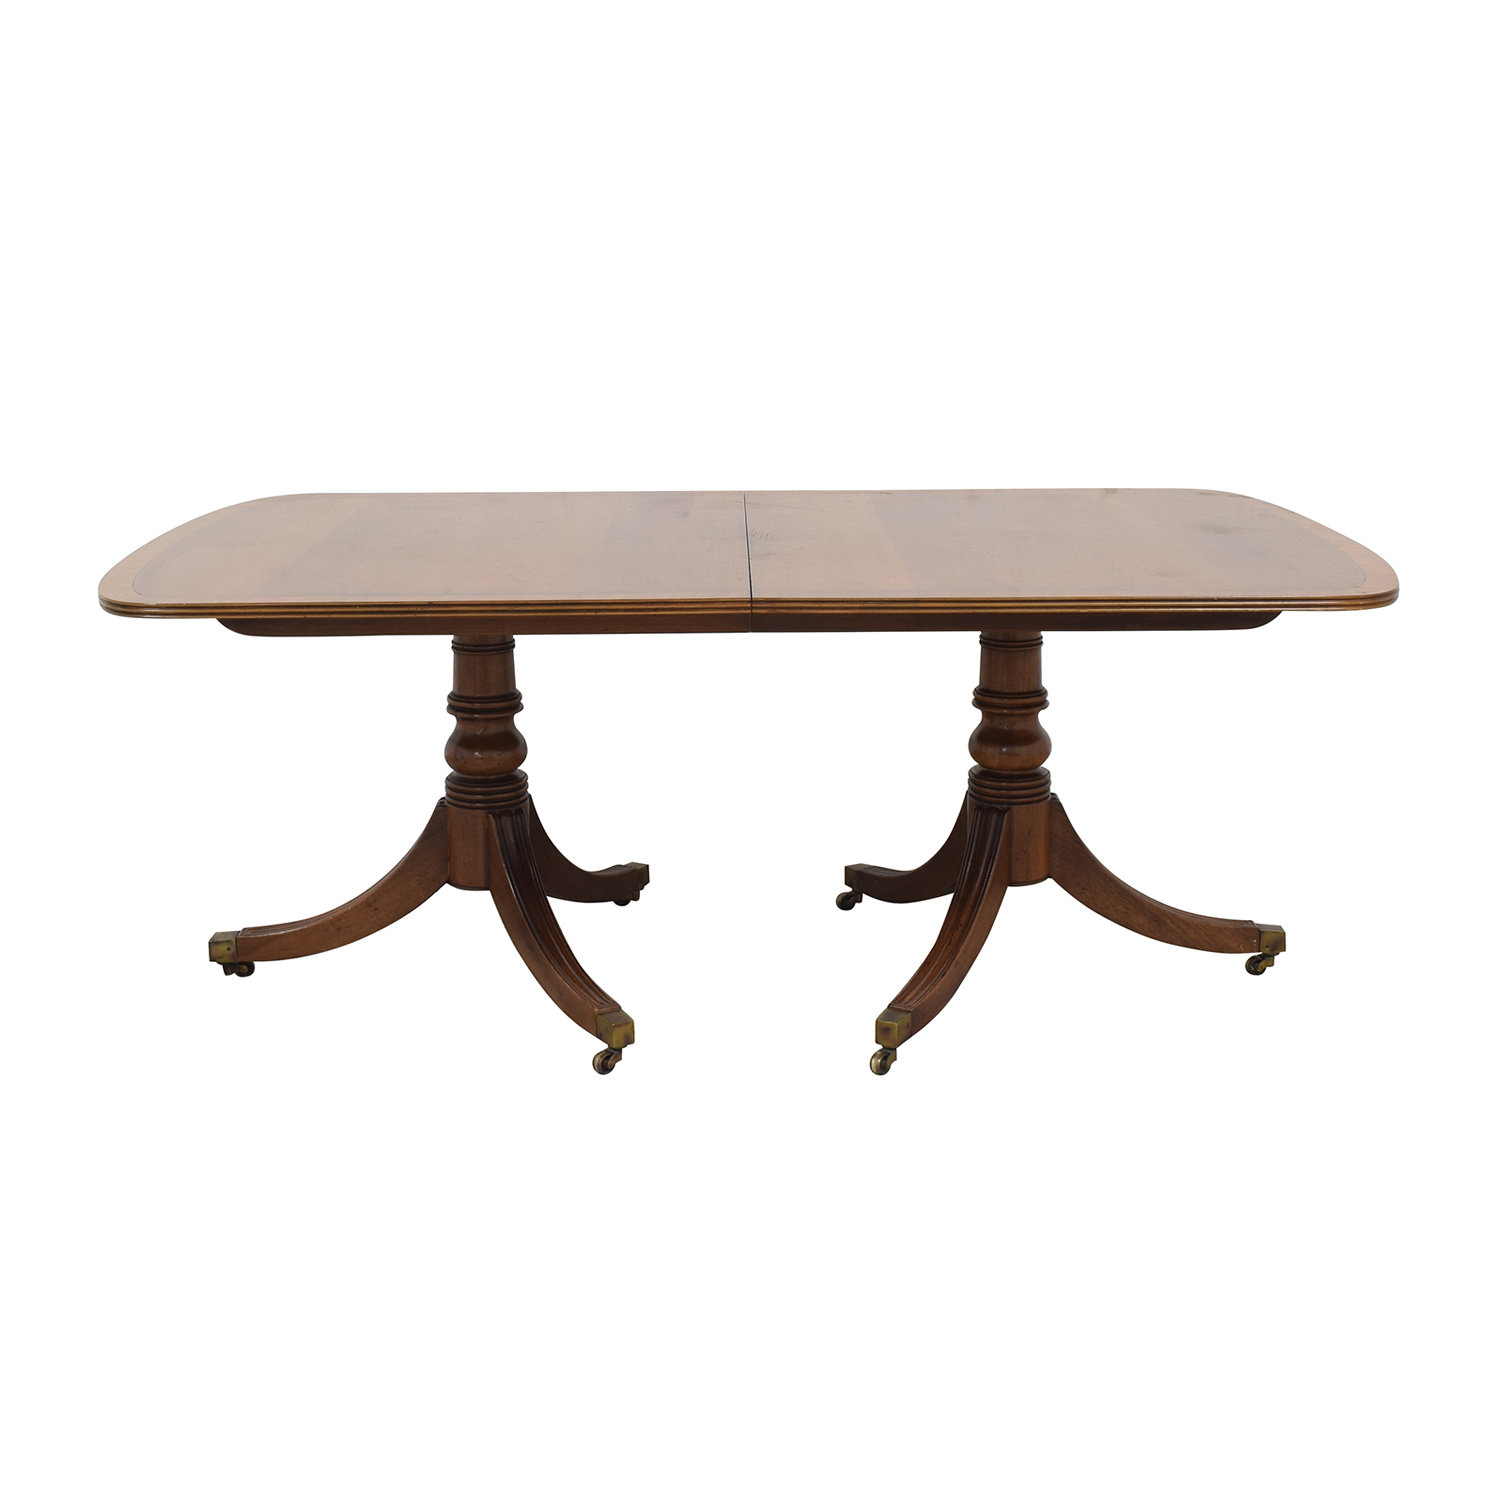 Henredon Furniture Henredon Fine Furniture Double Pedestal Dining Table with Banded Inlaid Top dimensions